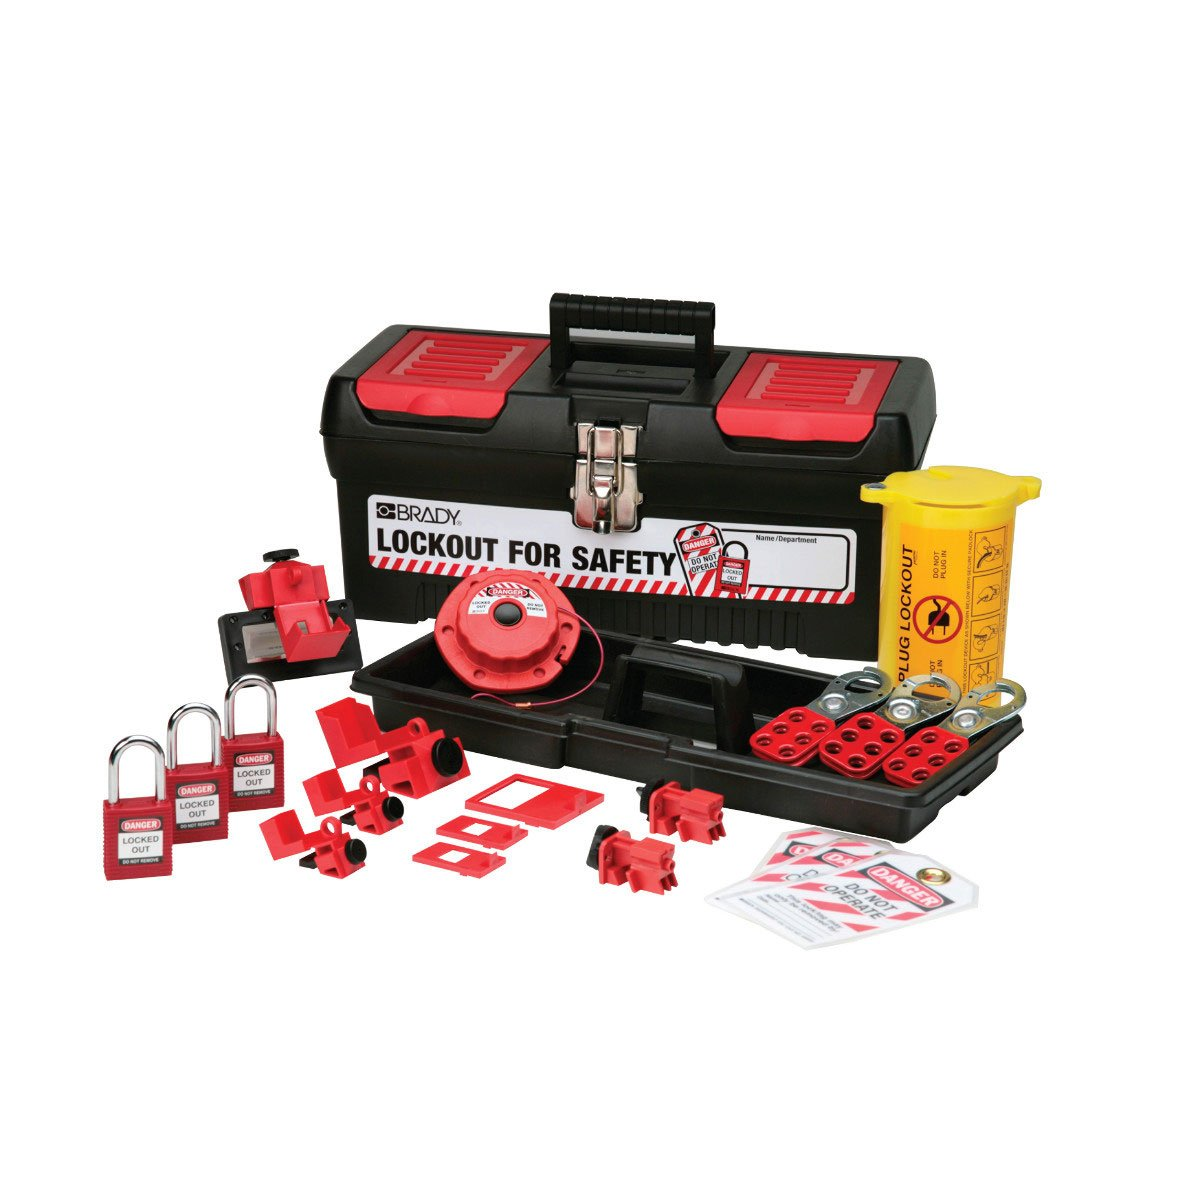 Brady Personal Electrical Lockout Toolbox Kit, Includes 2 Safety Padlocks